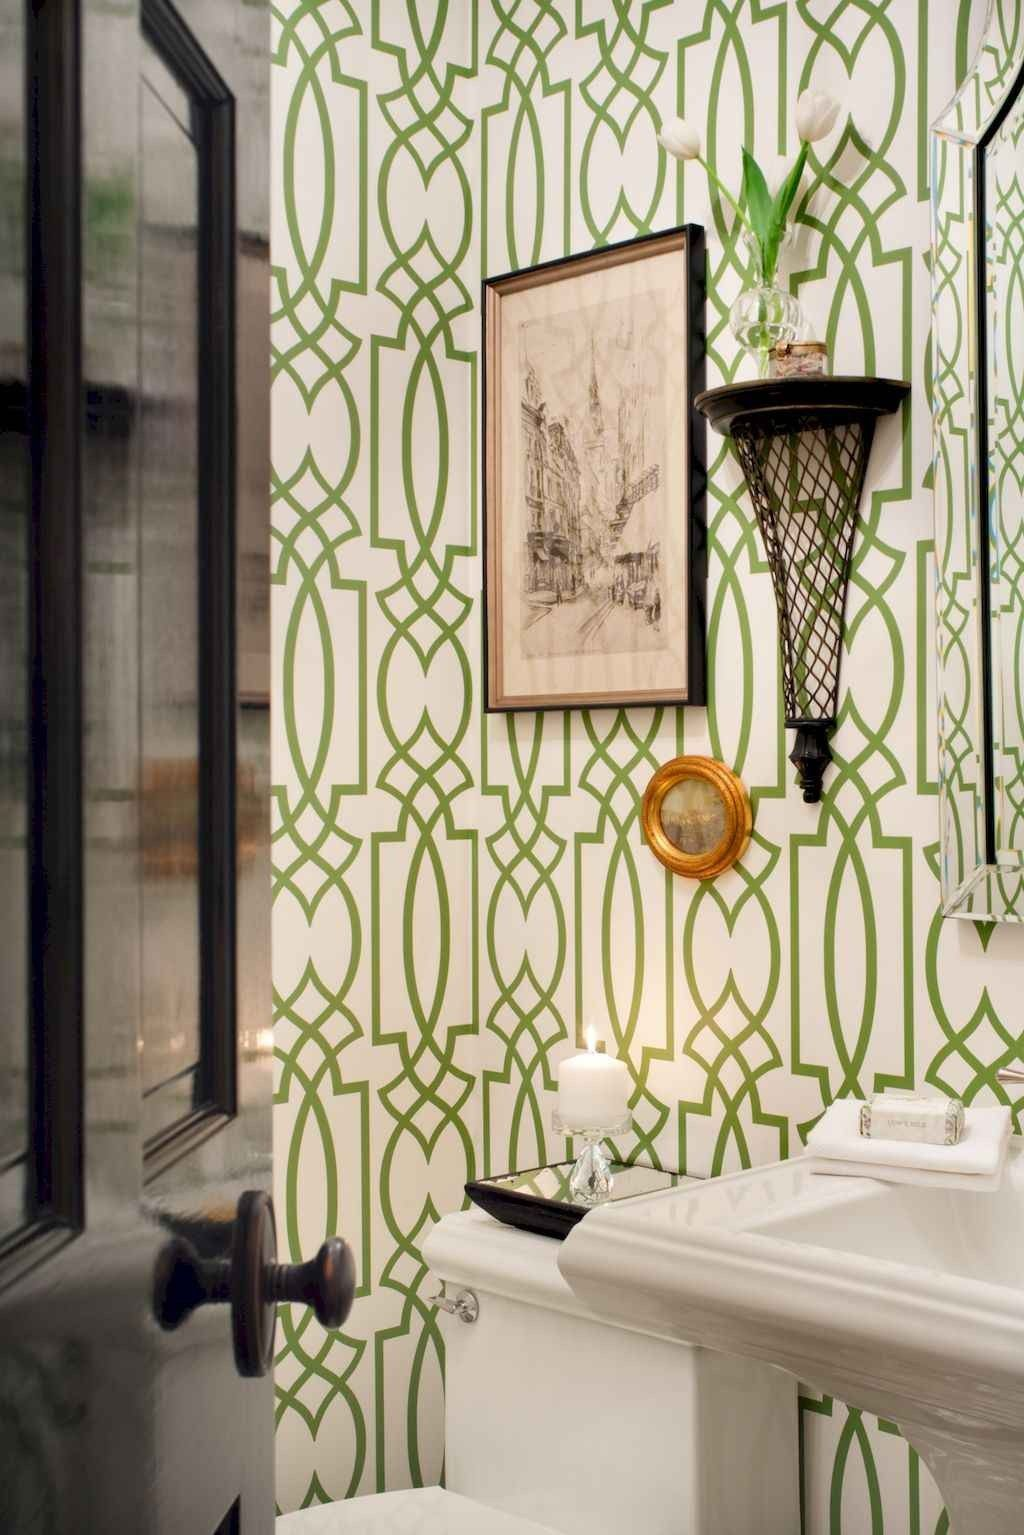 Marvelous Small Powder Room Ideas in 2020 Bathroom